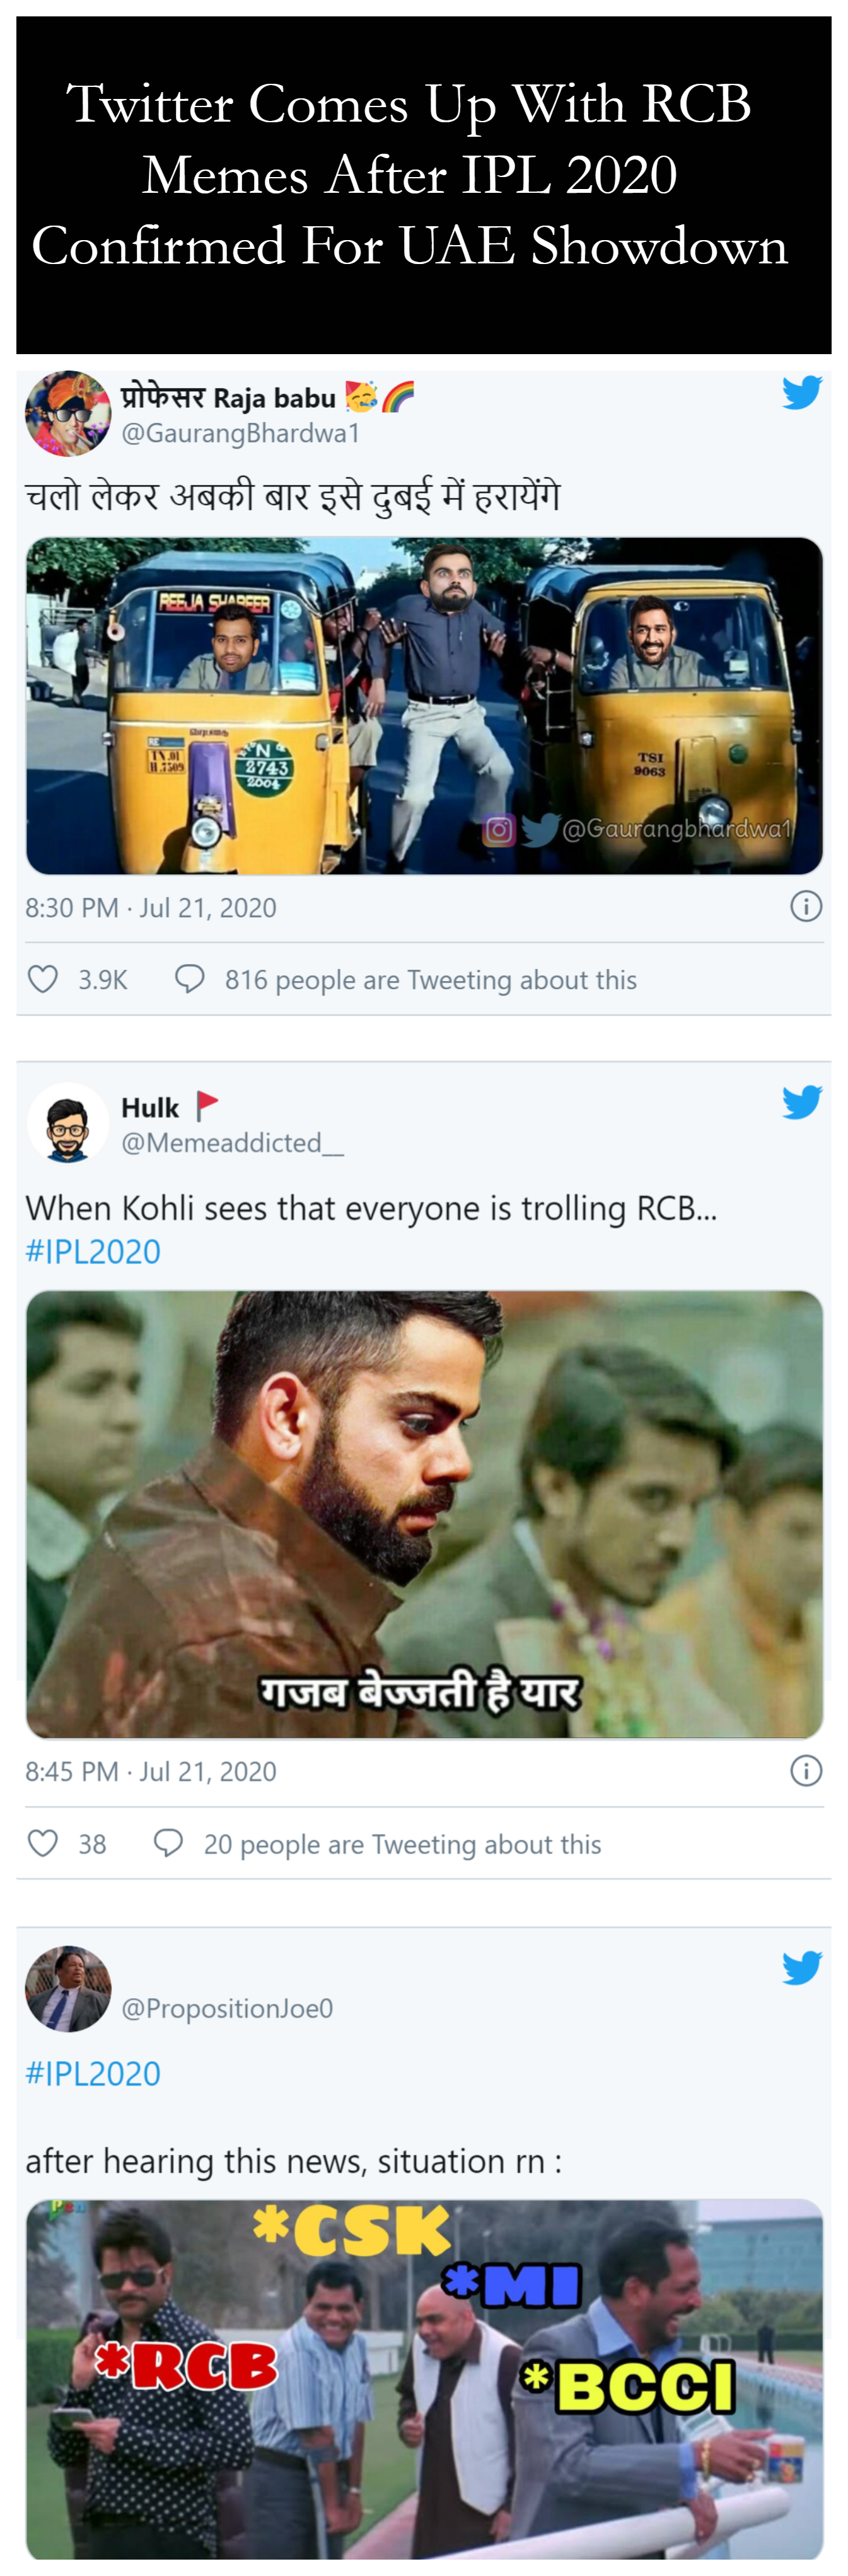 Twitter Comes Up With Rcb Memes After Ipl 2020 Confirmed For Uae Showdown In 2020 Cricket Quotes Memes Ipl